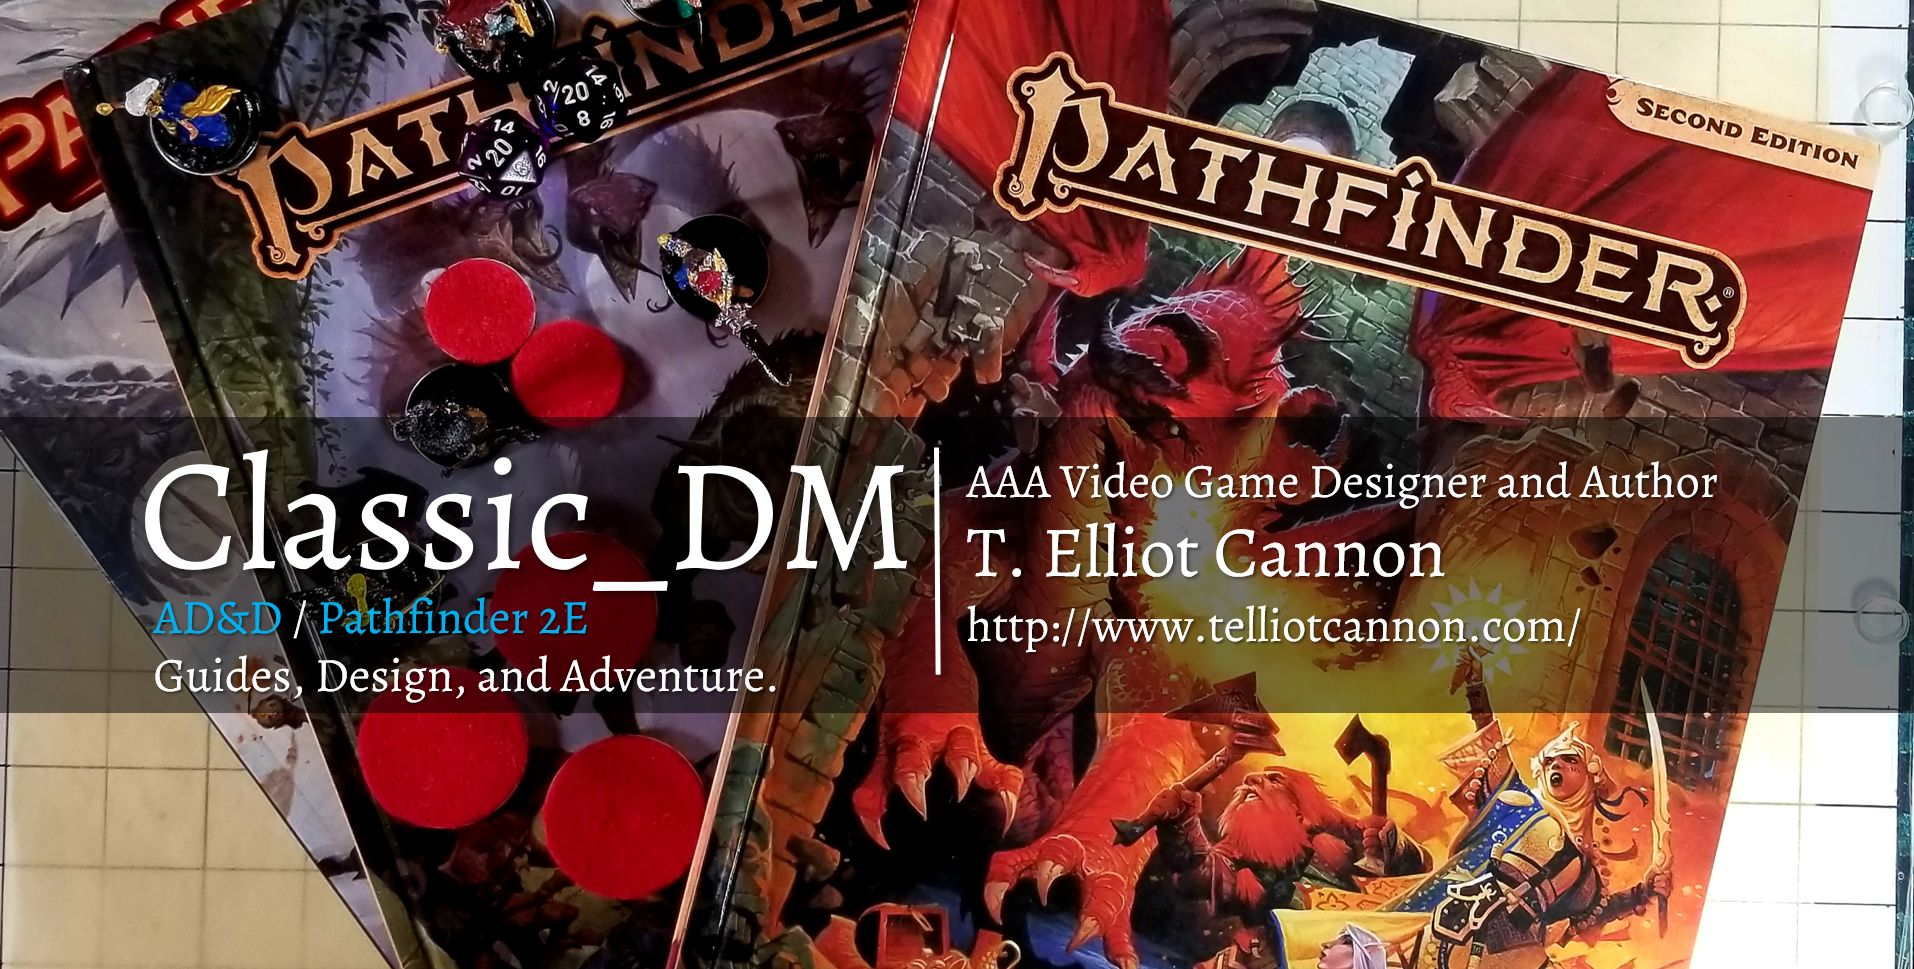 Visit Classic_DM on Patreon. Show your support!